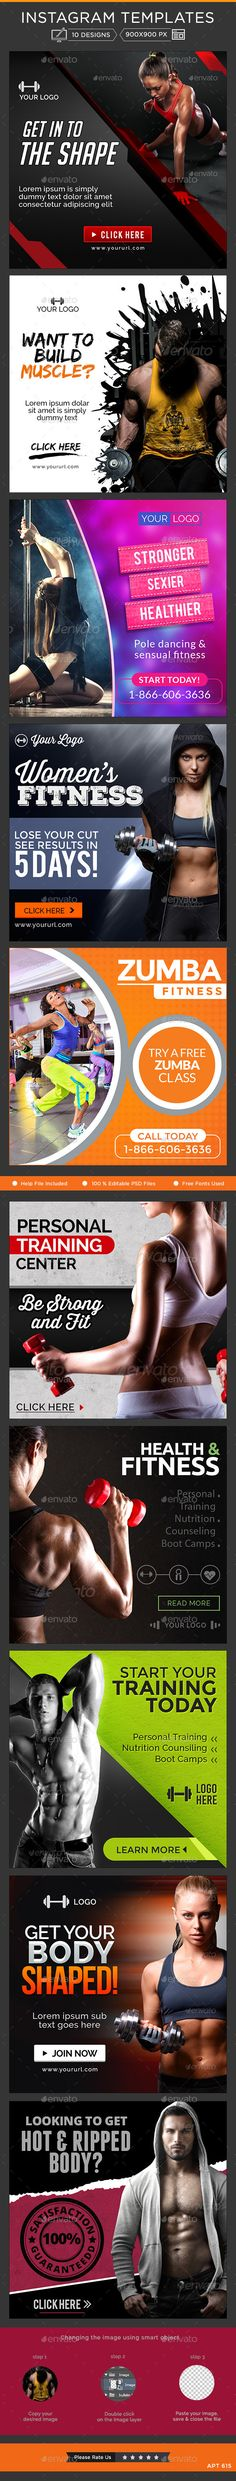 Health & Fitness Instagram Templates - 10 Designs #design Download: http://graphicriver.net/item/health-fitness-instagram-templates-10-designs/11418858?ref=ksioks